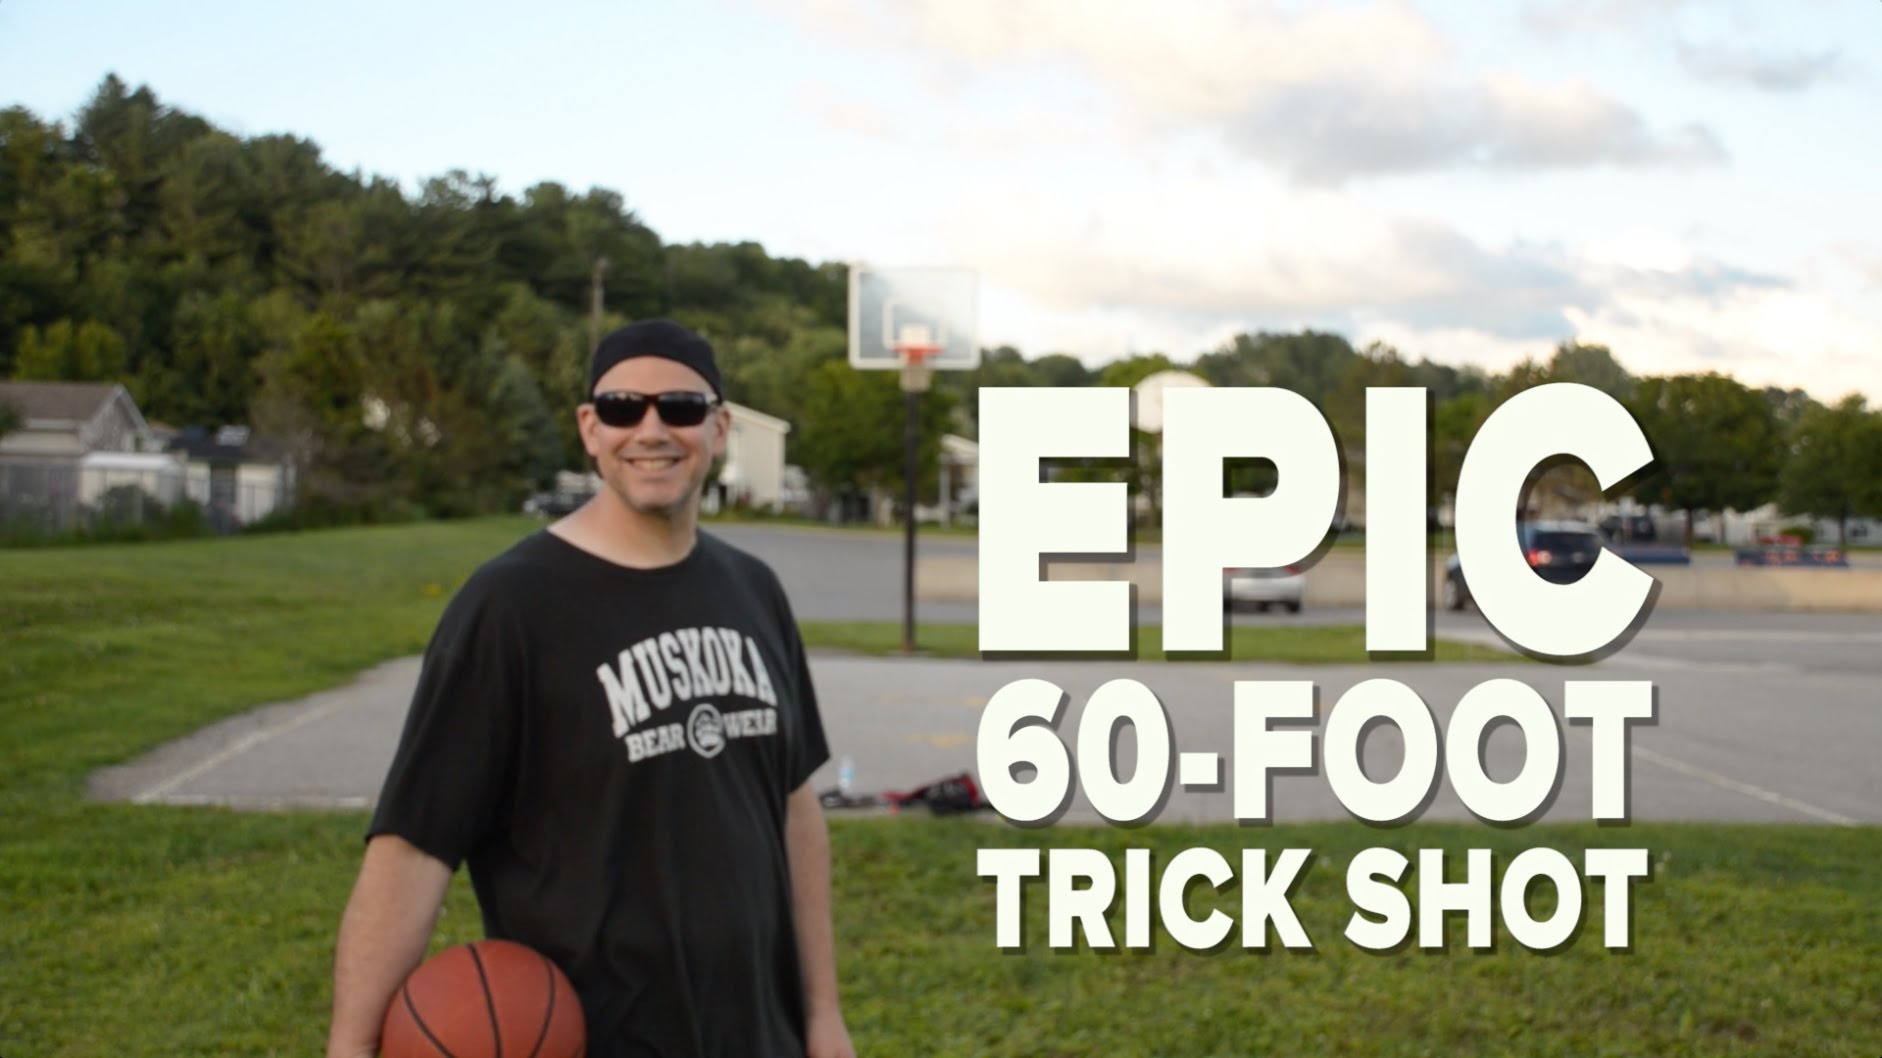 Epic 60-Foot Trick Shot